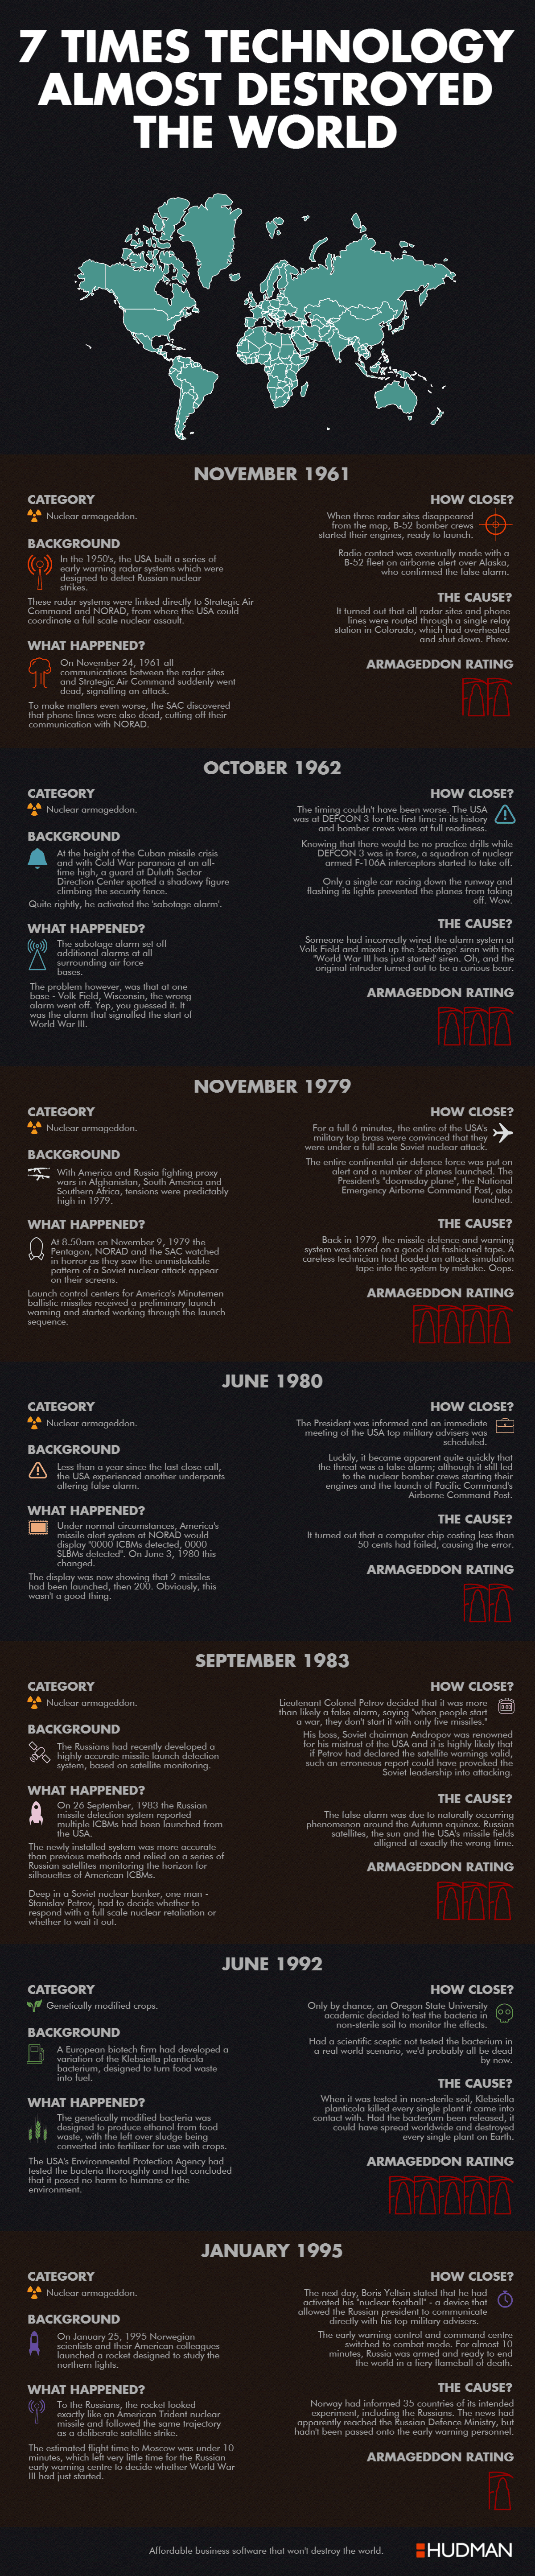 7 Times Technology Almost Destroyed The World #Infographic